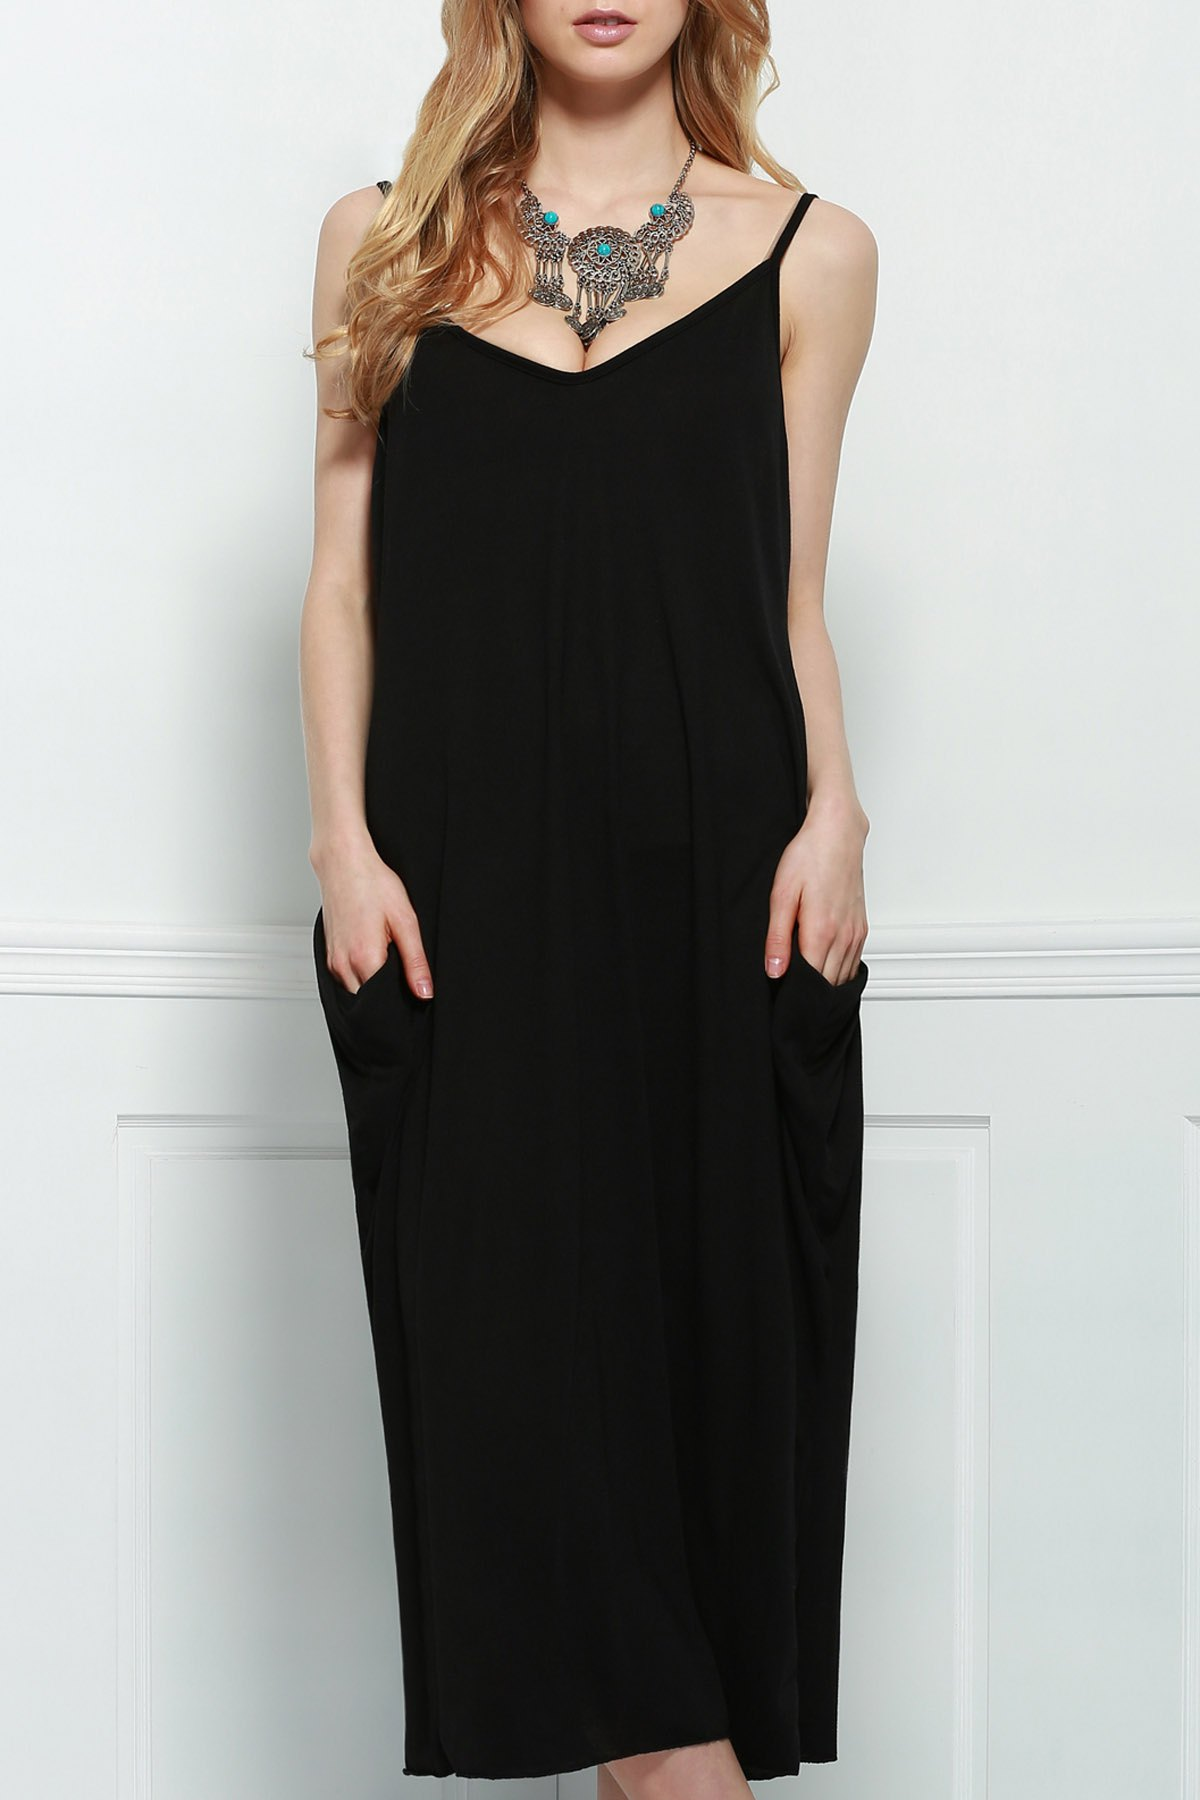 Spaghetti Strap Solid Color Loose-Fitting Maxi Dress